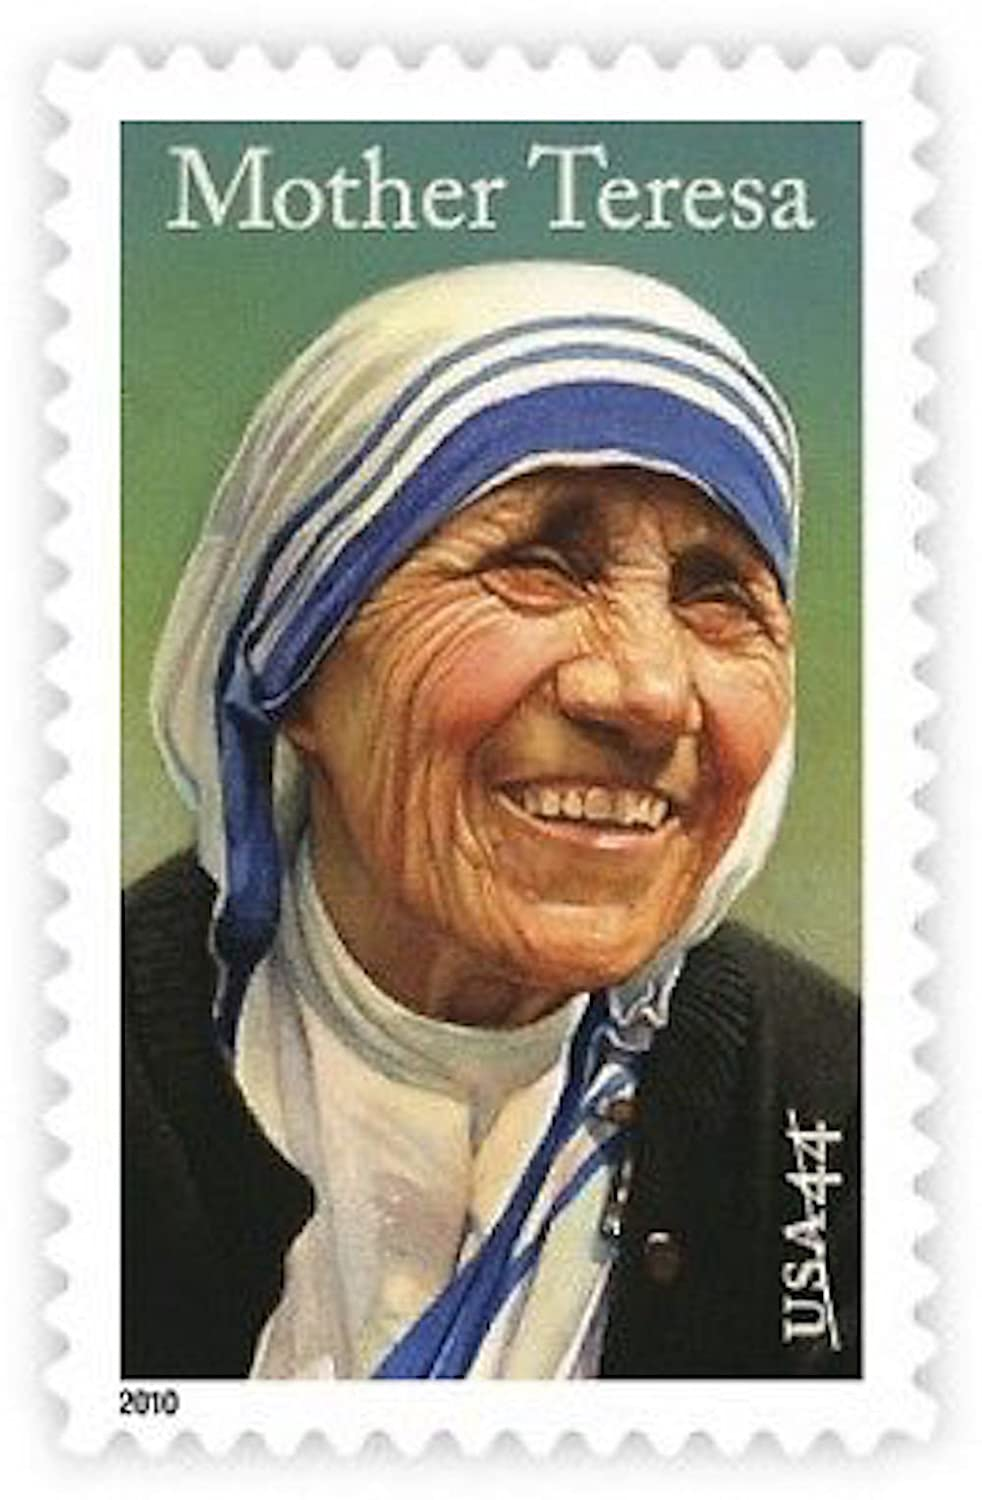 Mother Teresa, Full Sheet Sheet Sheet of 20 x 44-Cent Postage Stamps, USA 2010, Scott 4475 by USPS 25c2c1